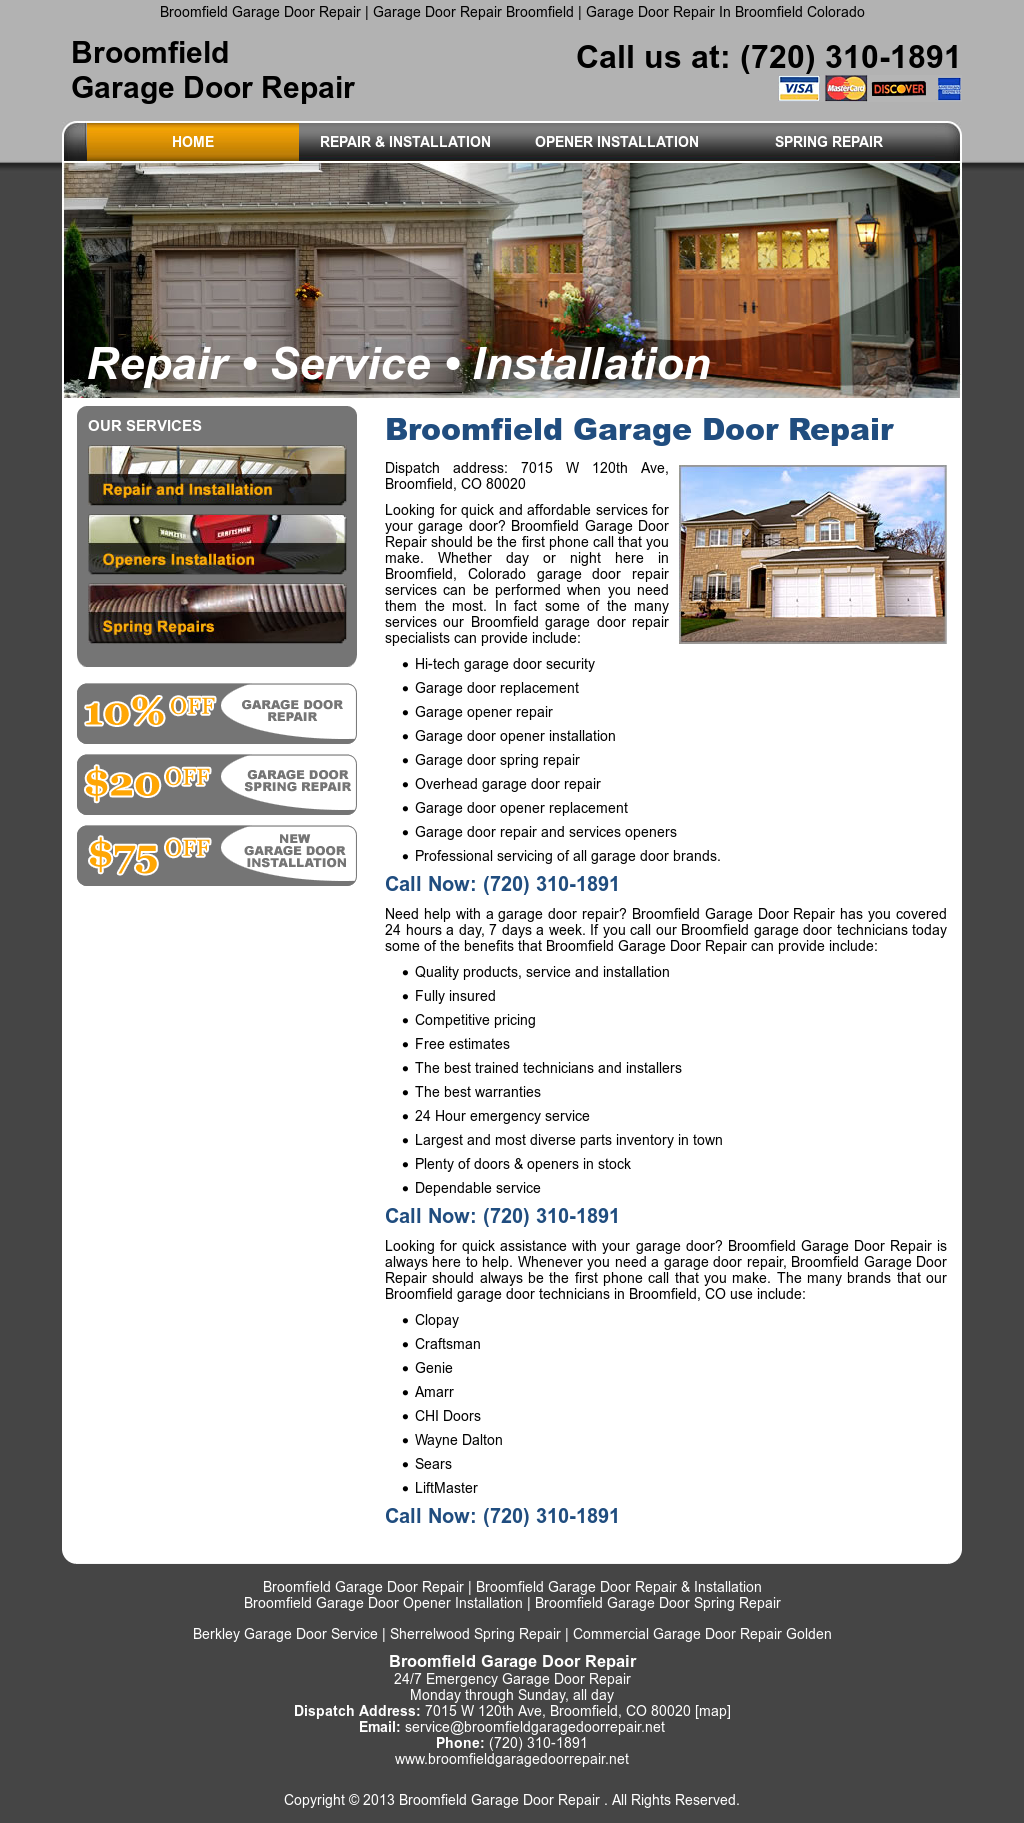 Broomfieldgaragedoorrepair Website History